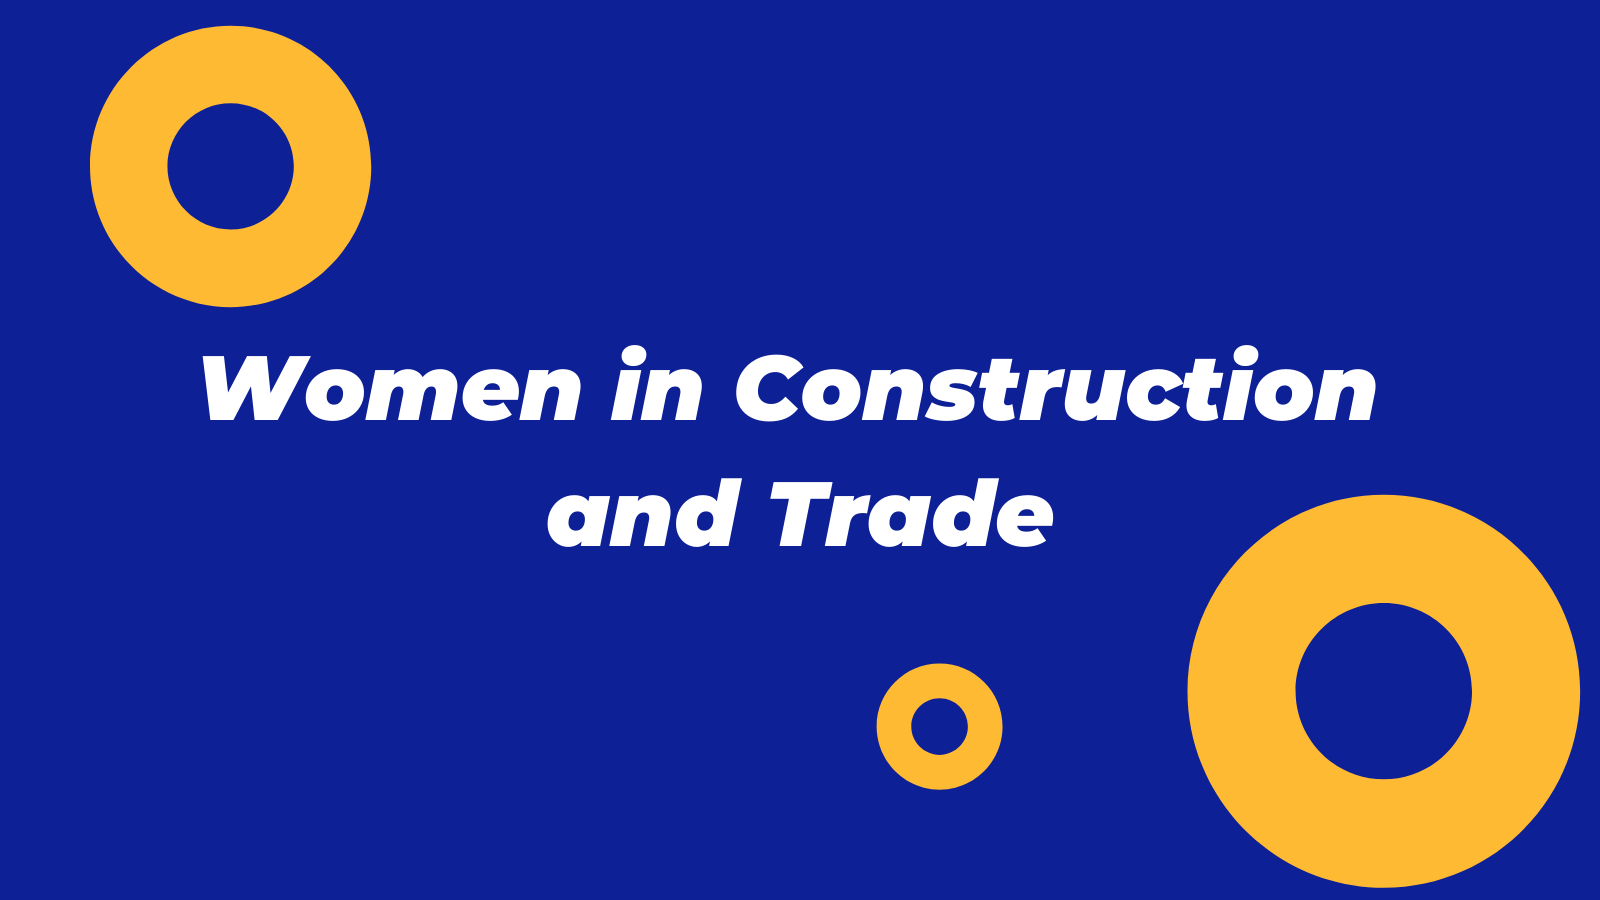 Women in Construction and Trade